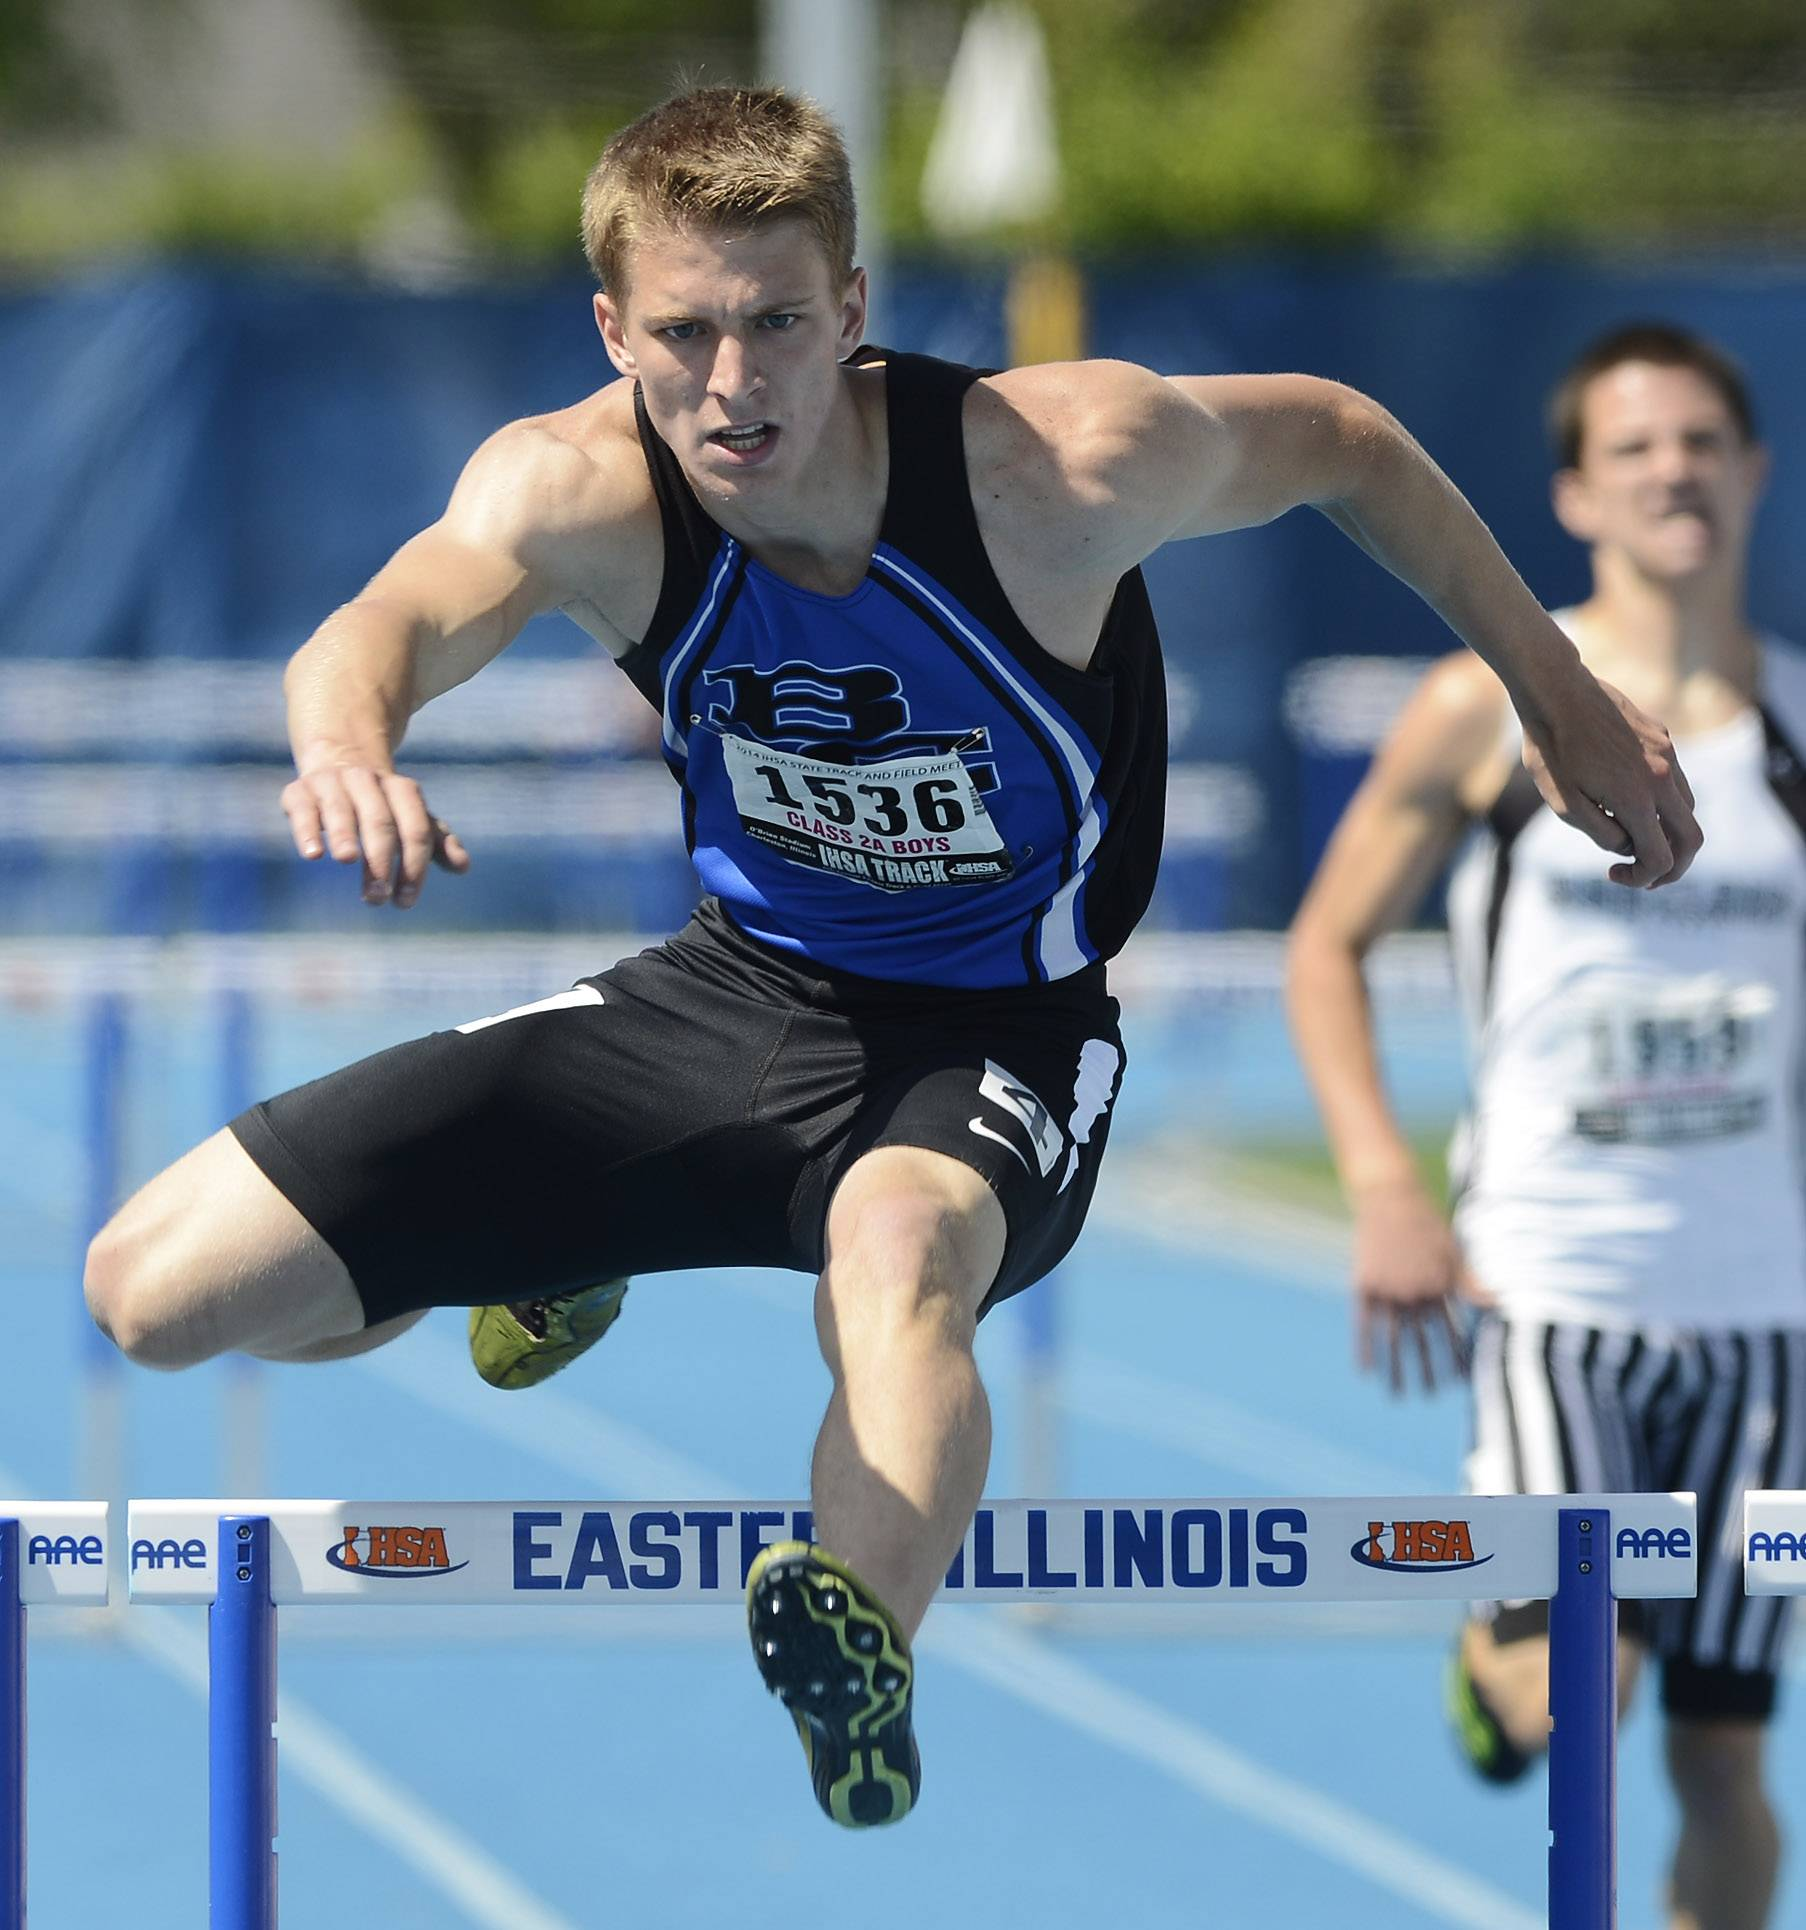 Burlington Central's Lucas Ege clears the last hurdle as he wins the 300-meter intermediate hurdles during the boys class 2A state track and field finals in Charleston Saturday.